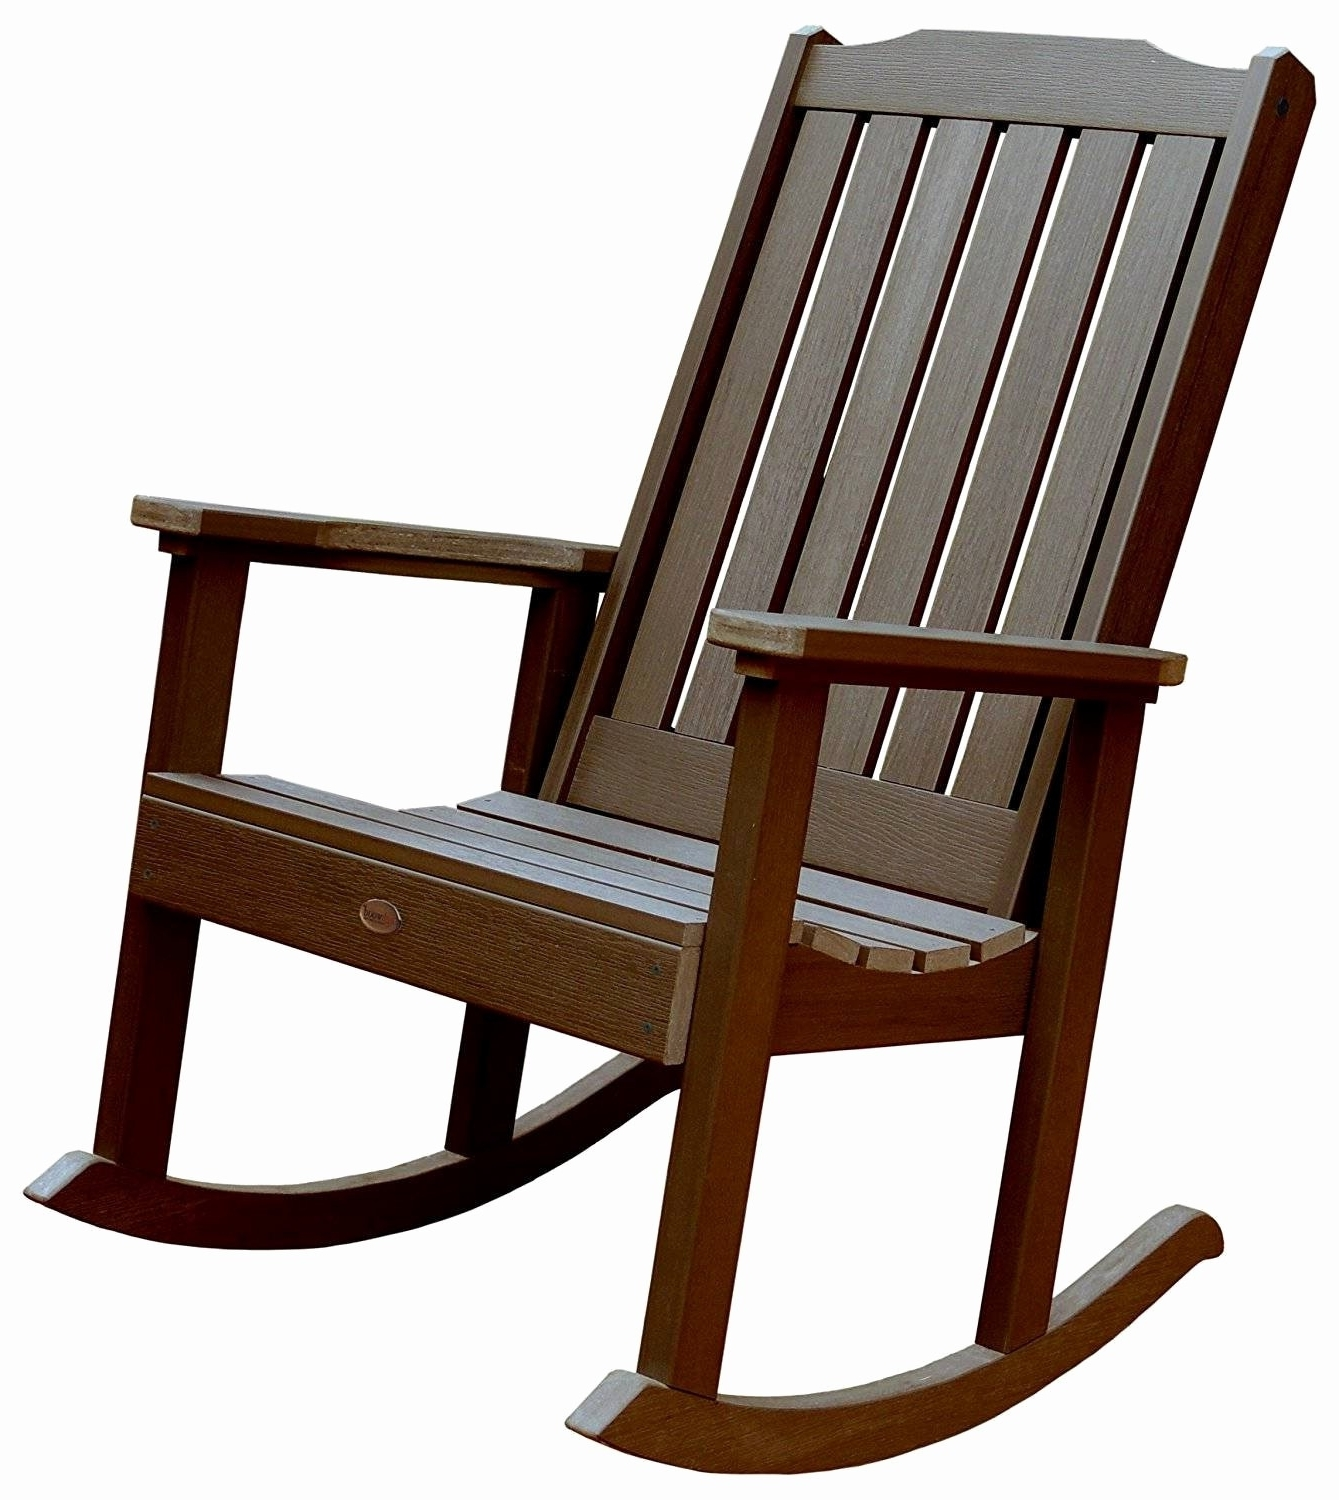 Trendy Outdoor Patio Rocking Chairs Awesome Ideas For Chair And Ottoman Set Pertaining To Wicker Rocking Chairs And Ottoman (View 12 of 15)